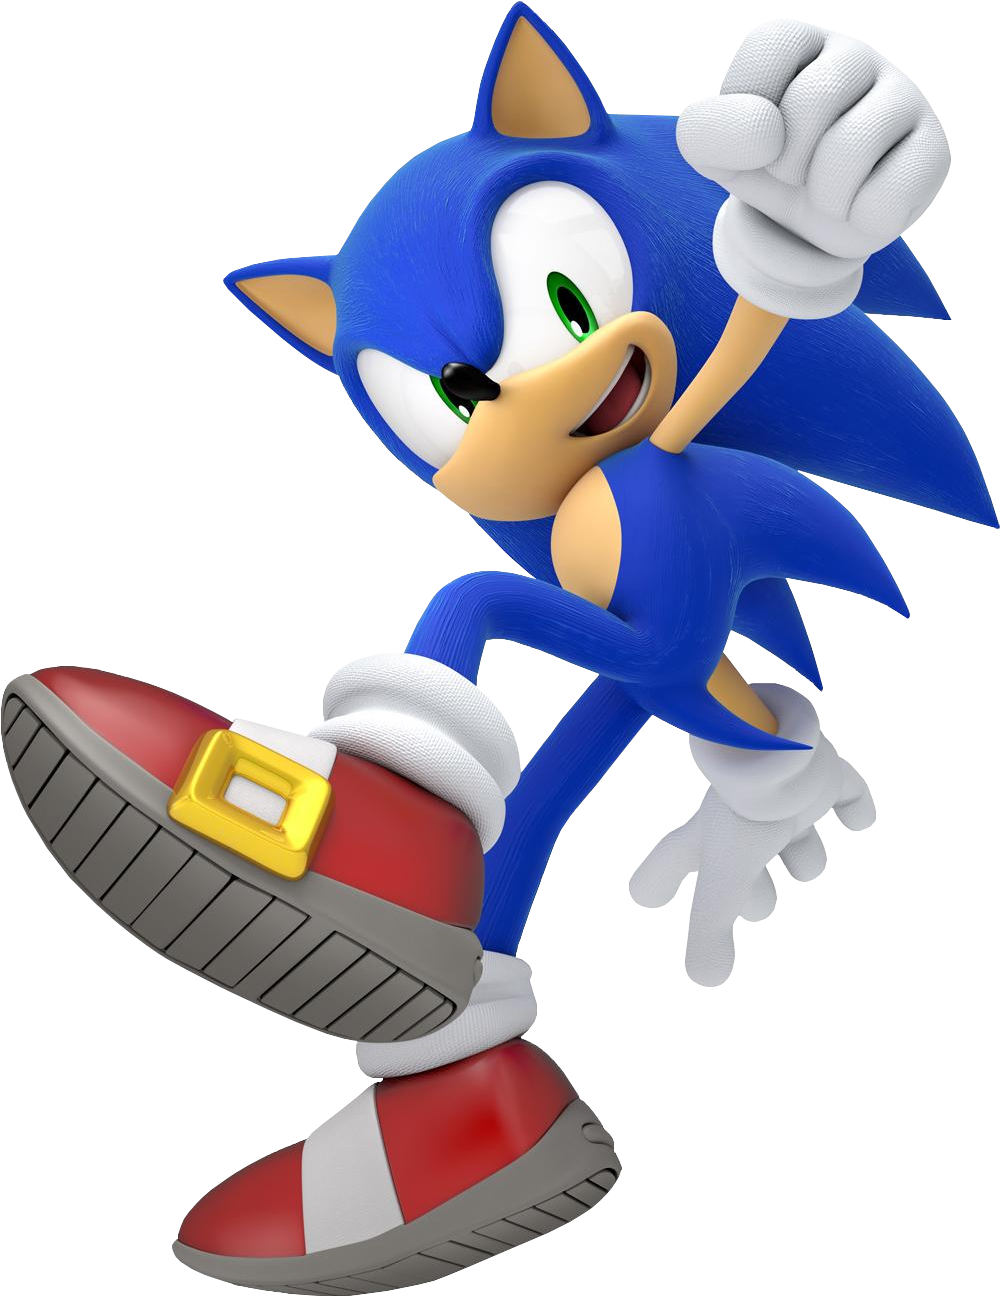 Sonic The Hedgehog Clipart Black And White Png Download Large Size Png Image Pikpng